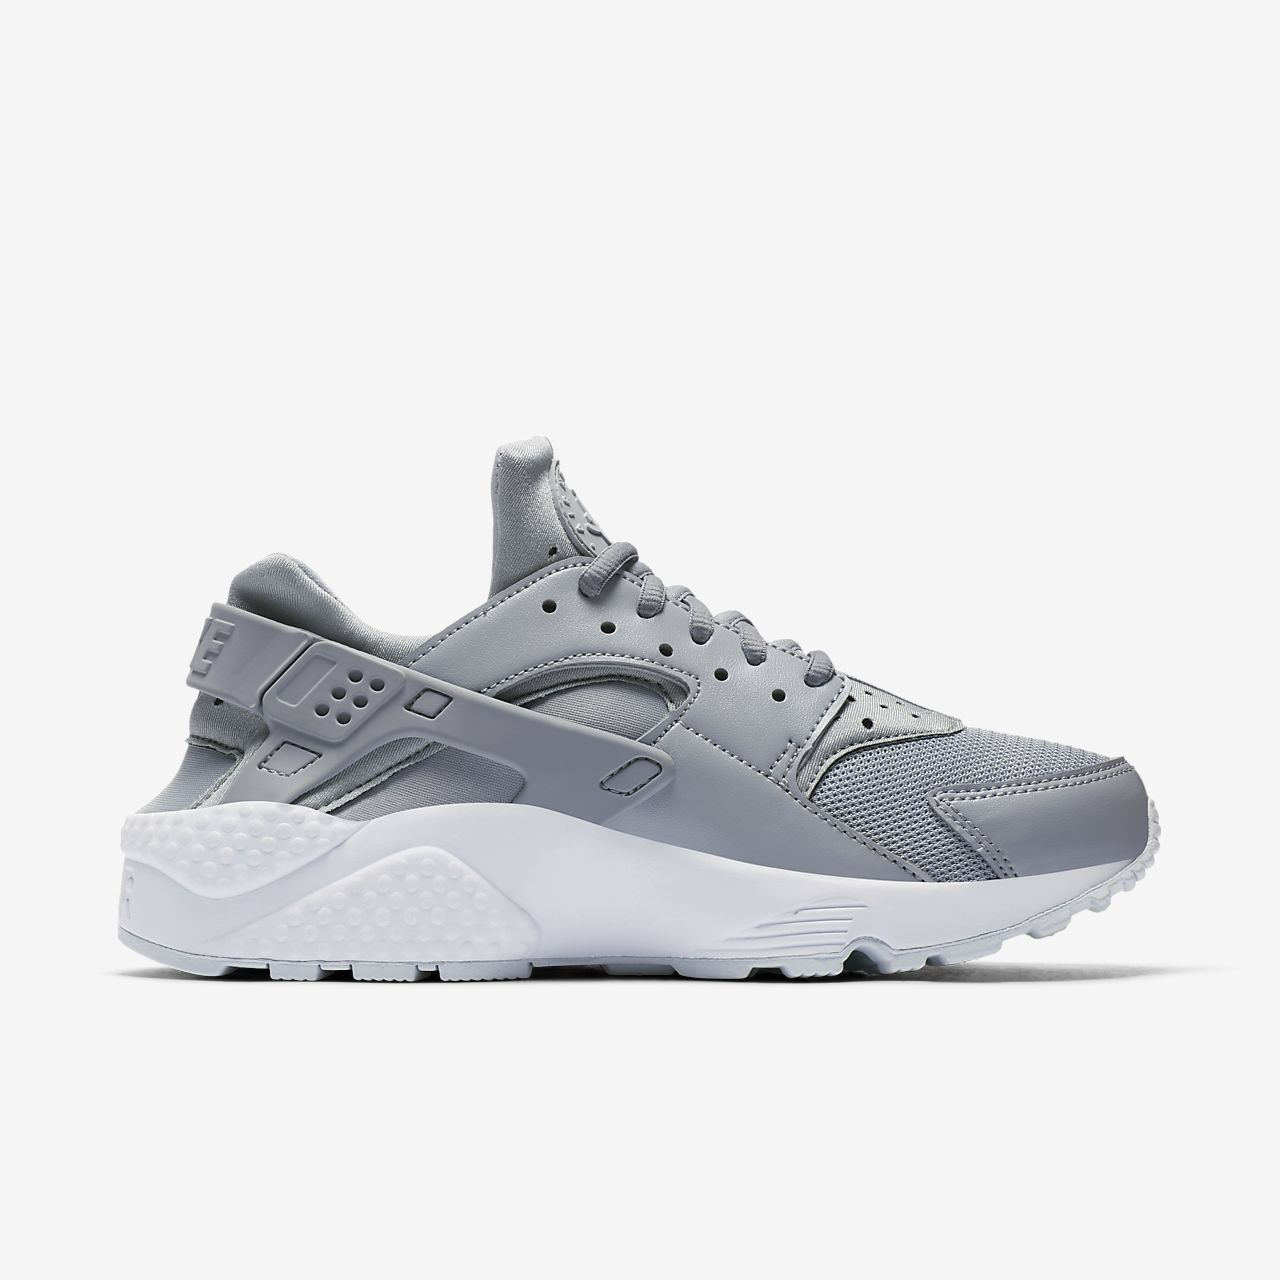 Nike Youth Huarache Drift Wolf Grey White Textile Trainers 38.5 EU VfhEz1yR